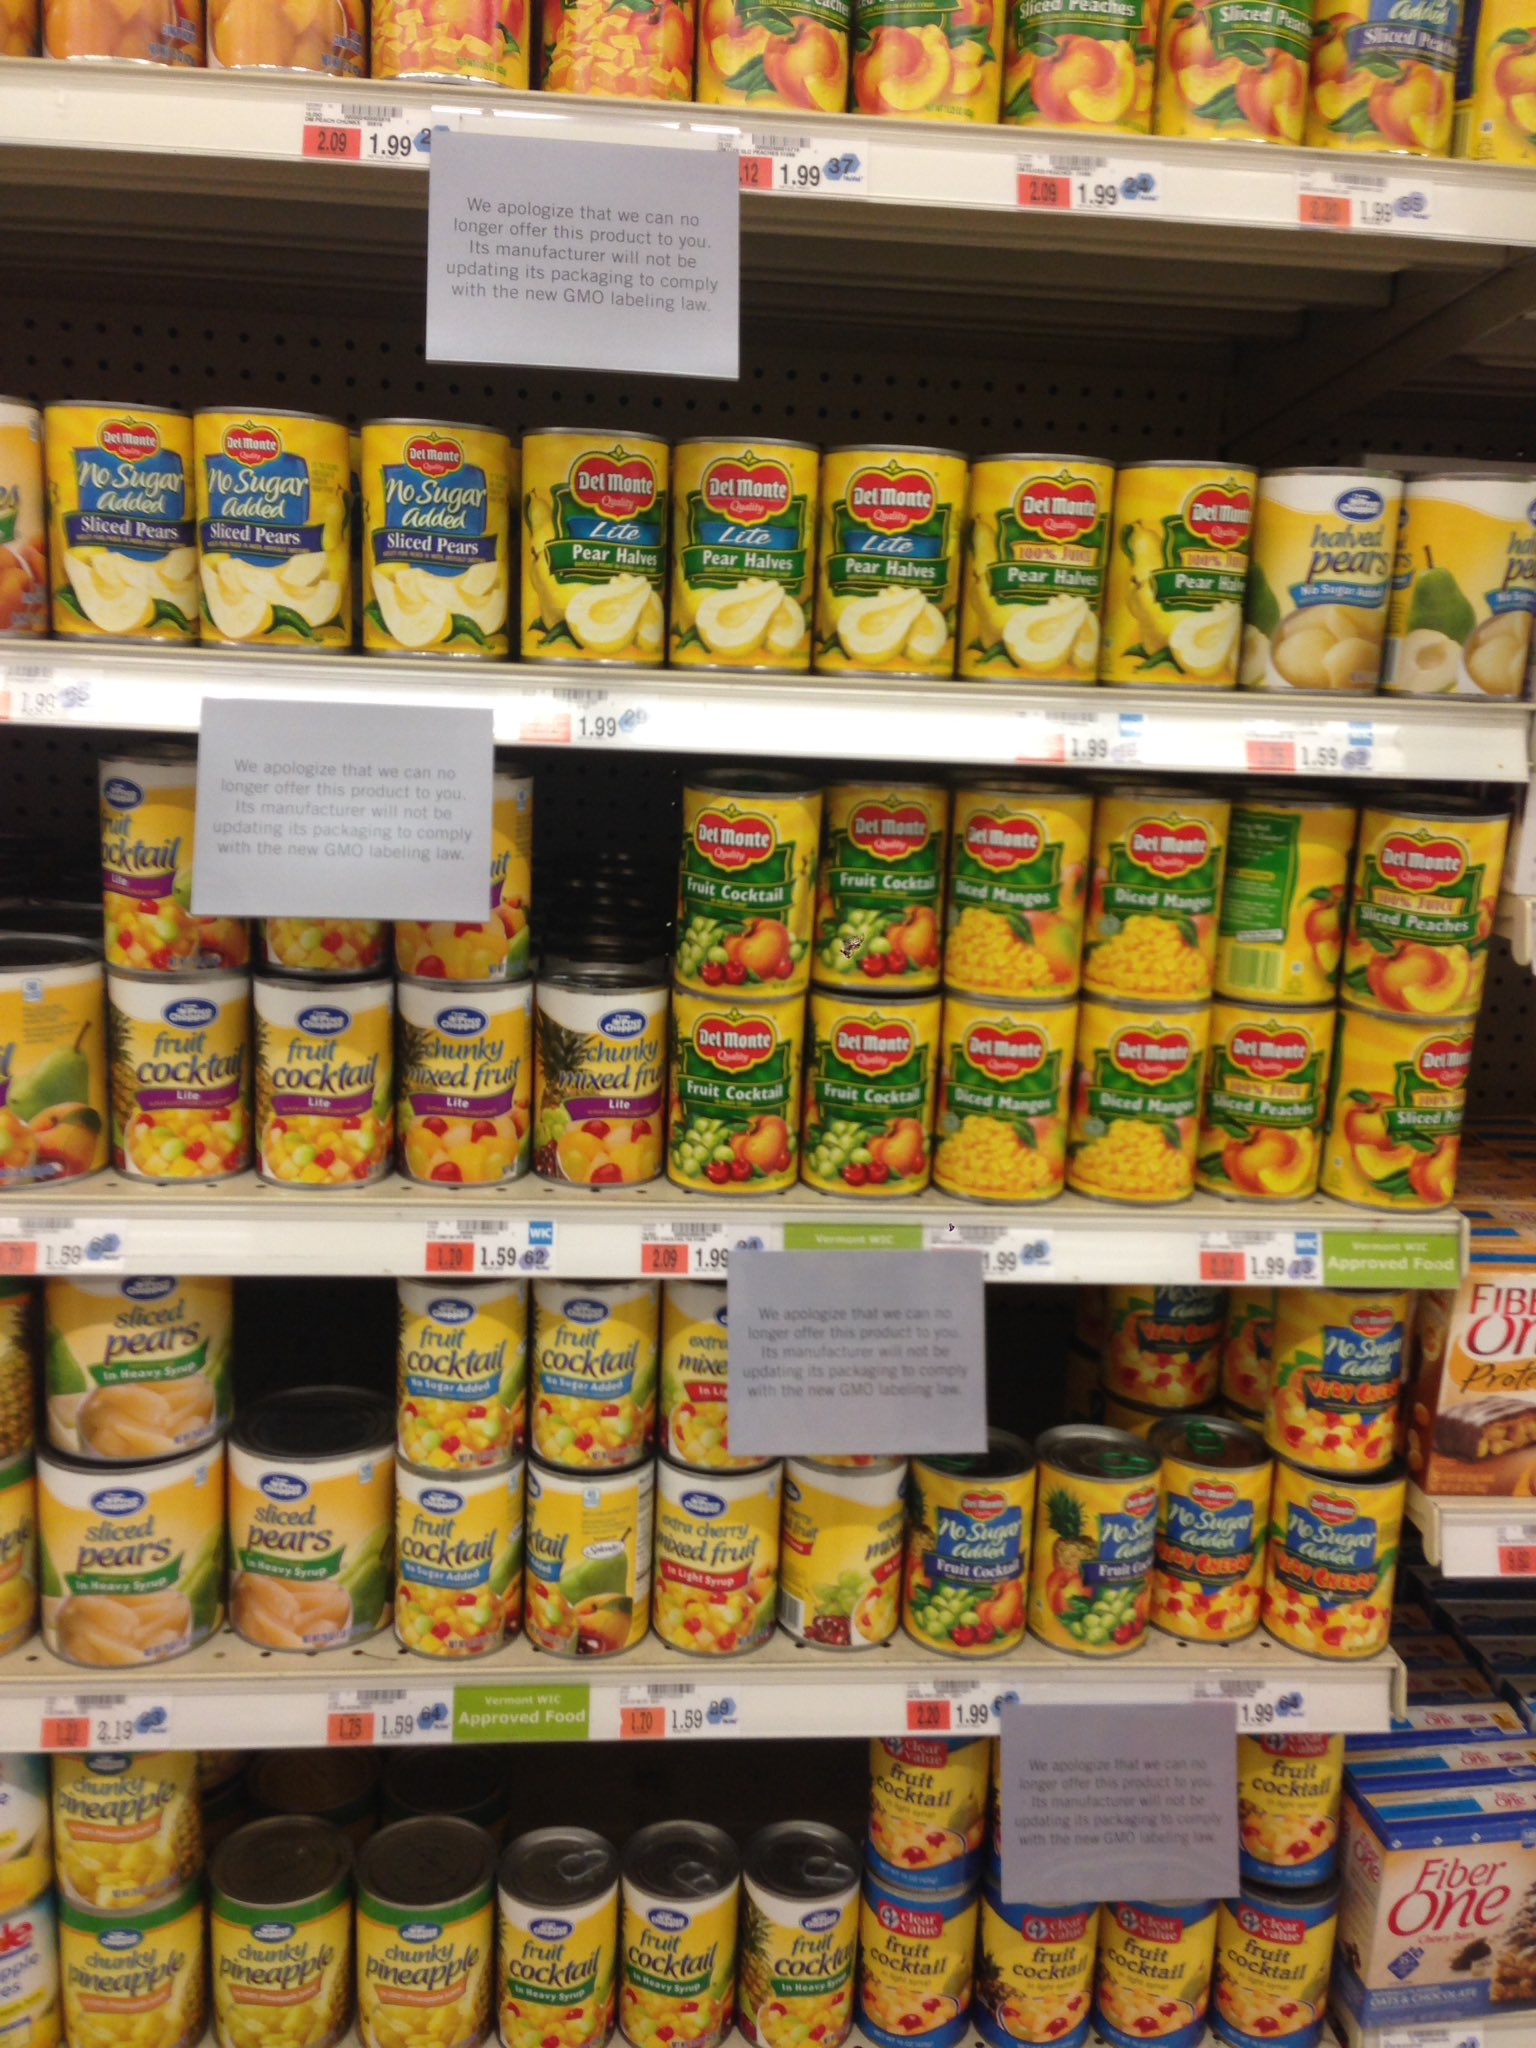 Removal of non-compliant canned fruit at Price Chopper.